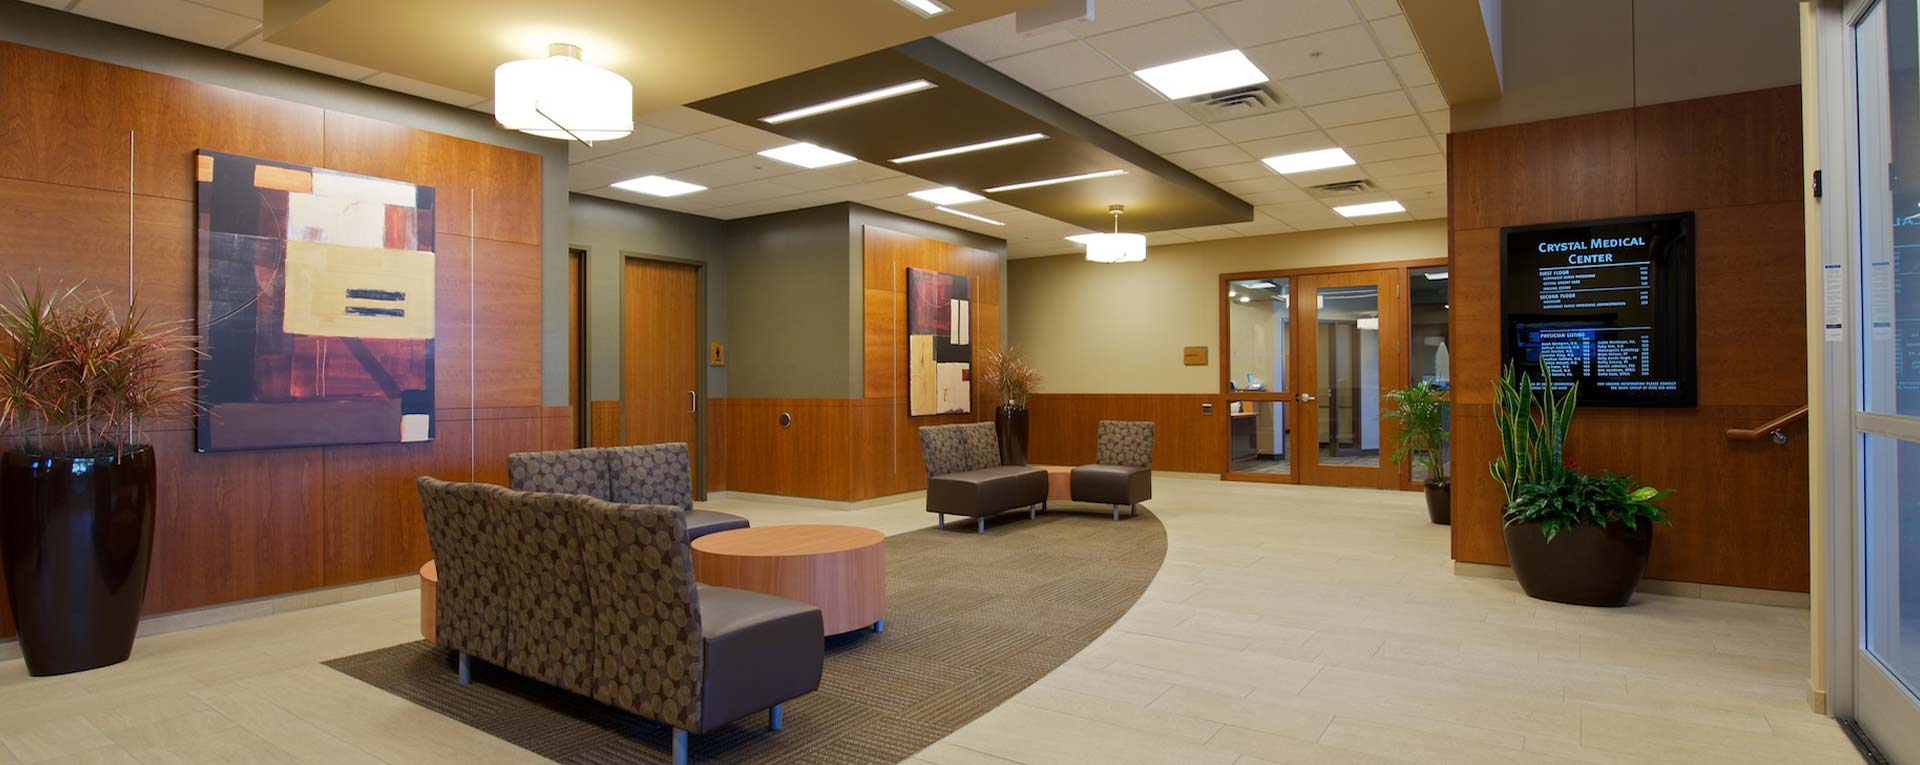 Crystal Medical Center Full Lobby